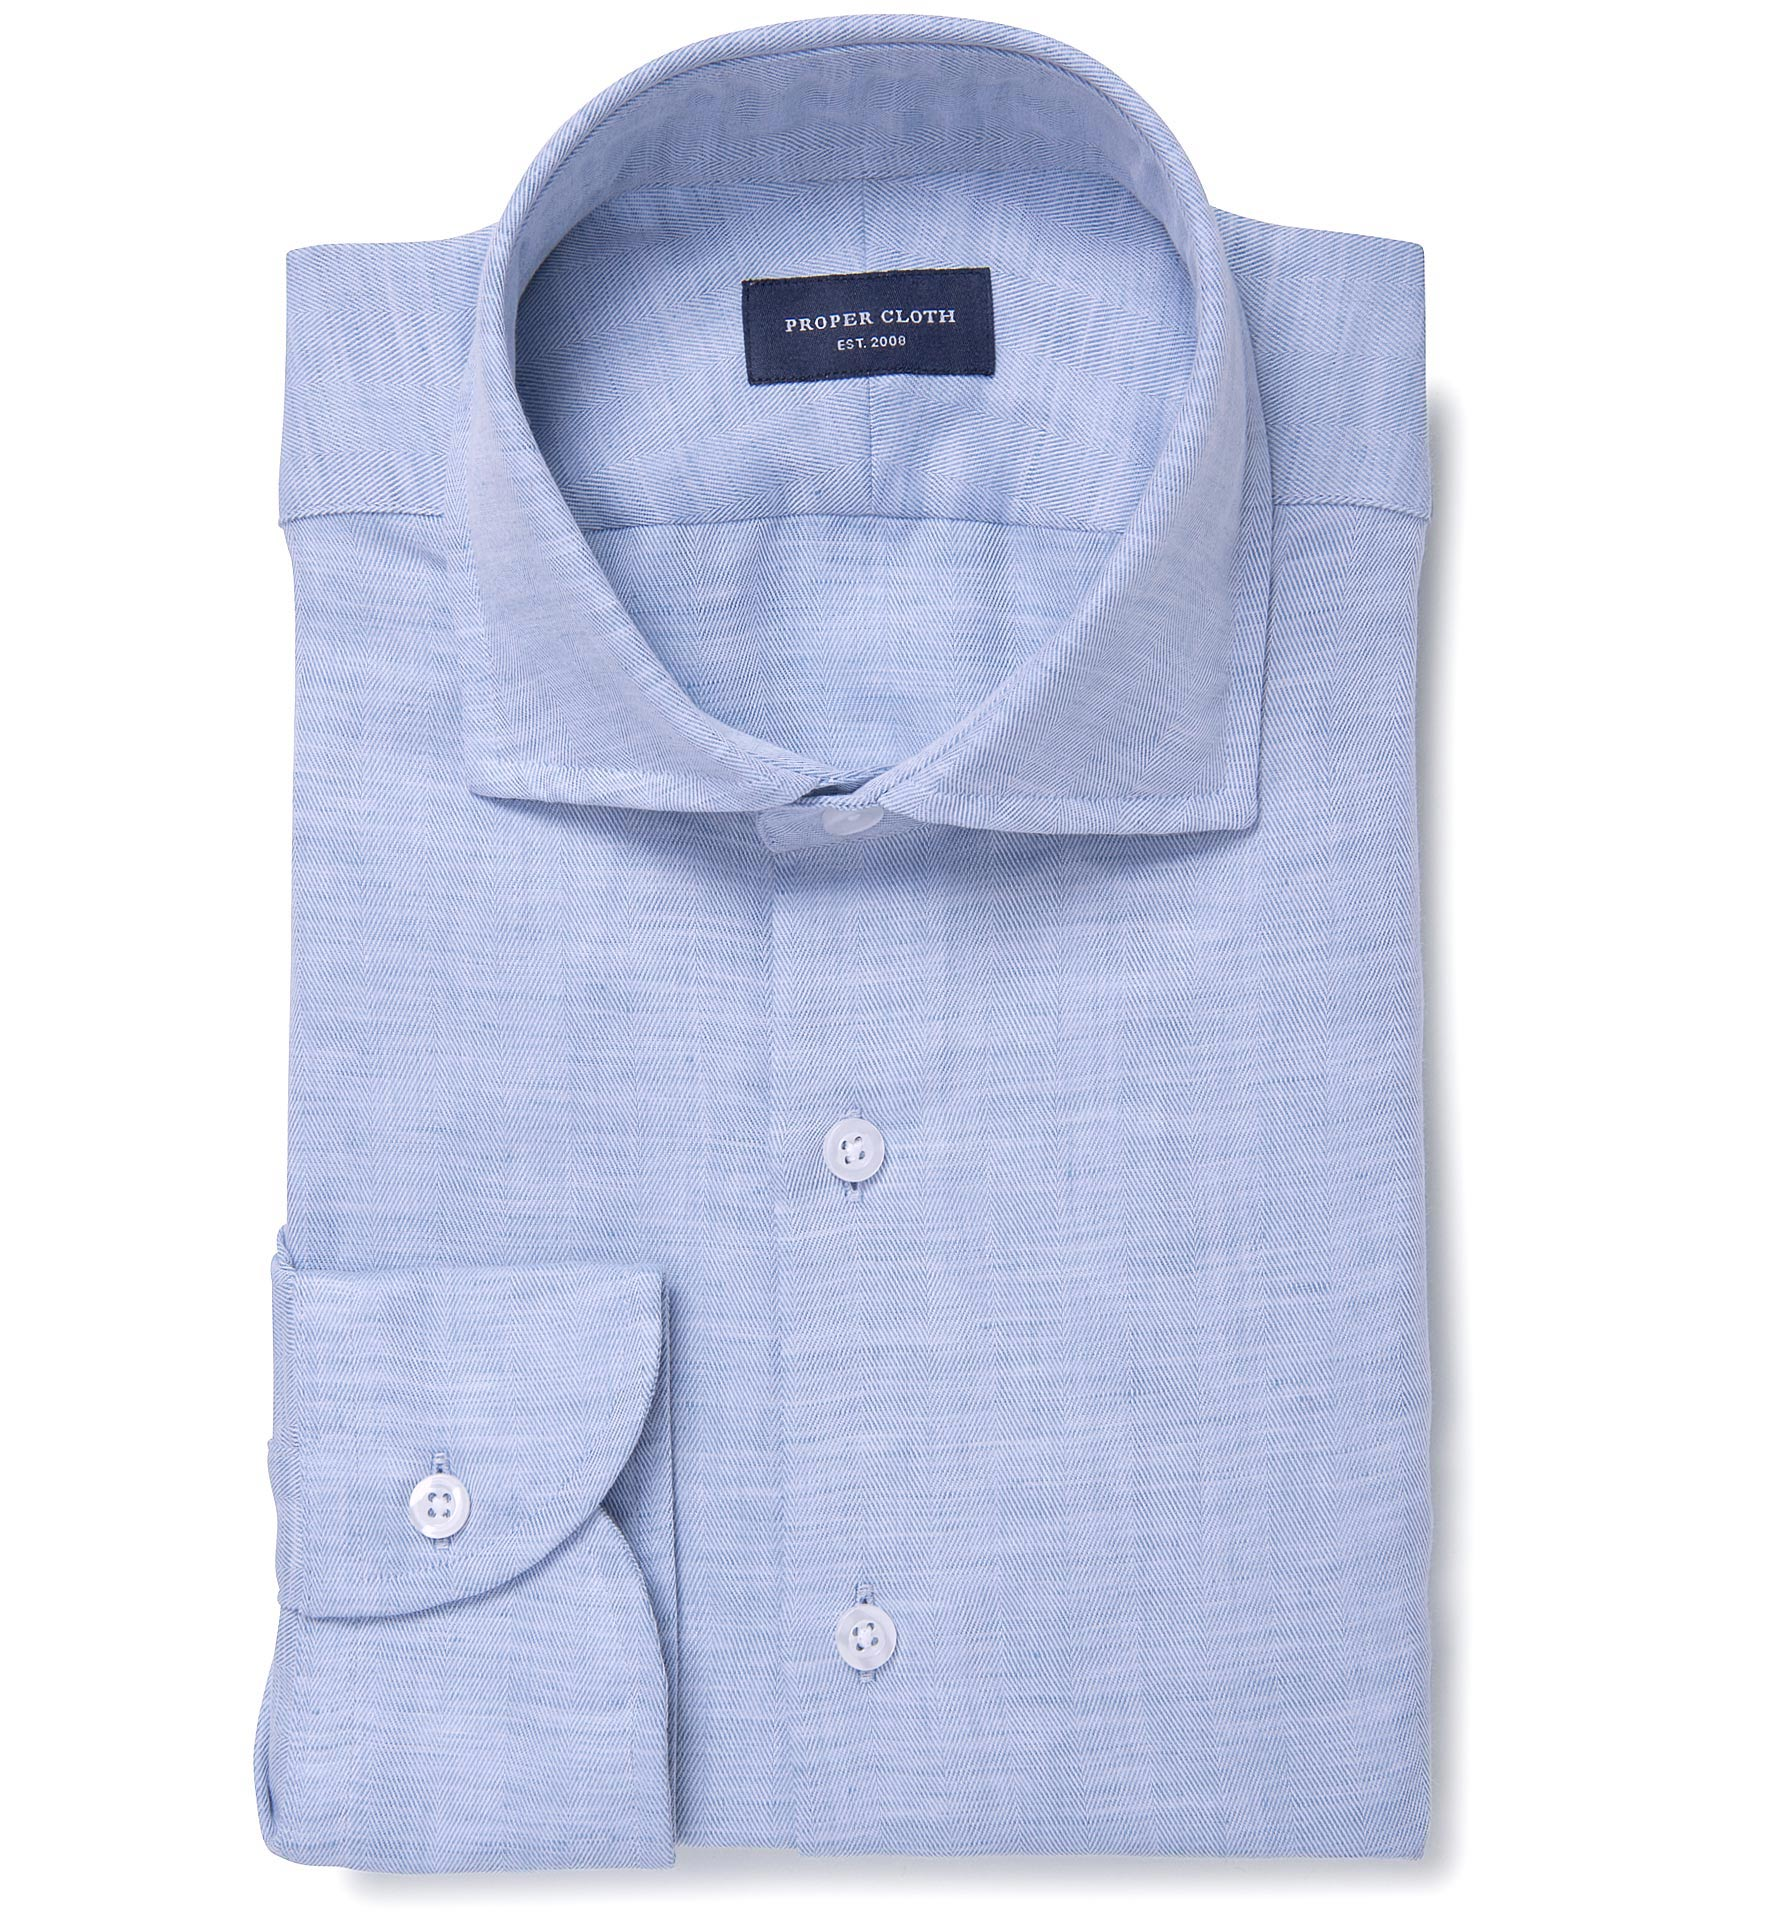 Portuguese blue cotton linen herringbone dress shirt by for Proper cloth custom shirt price